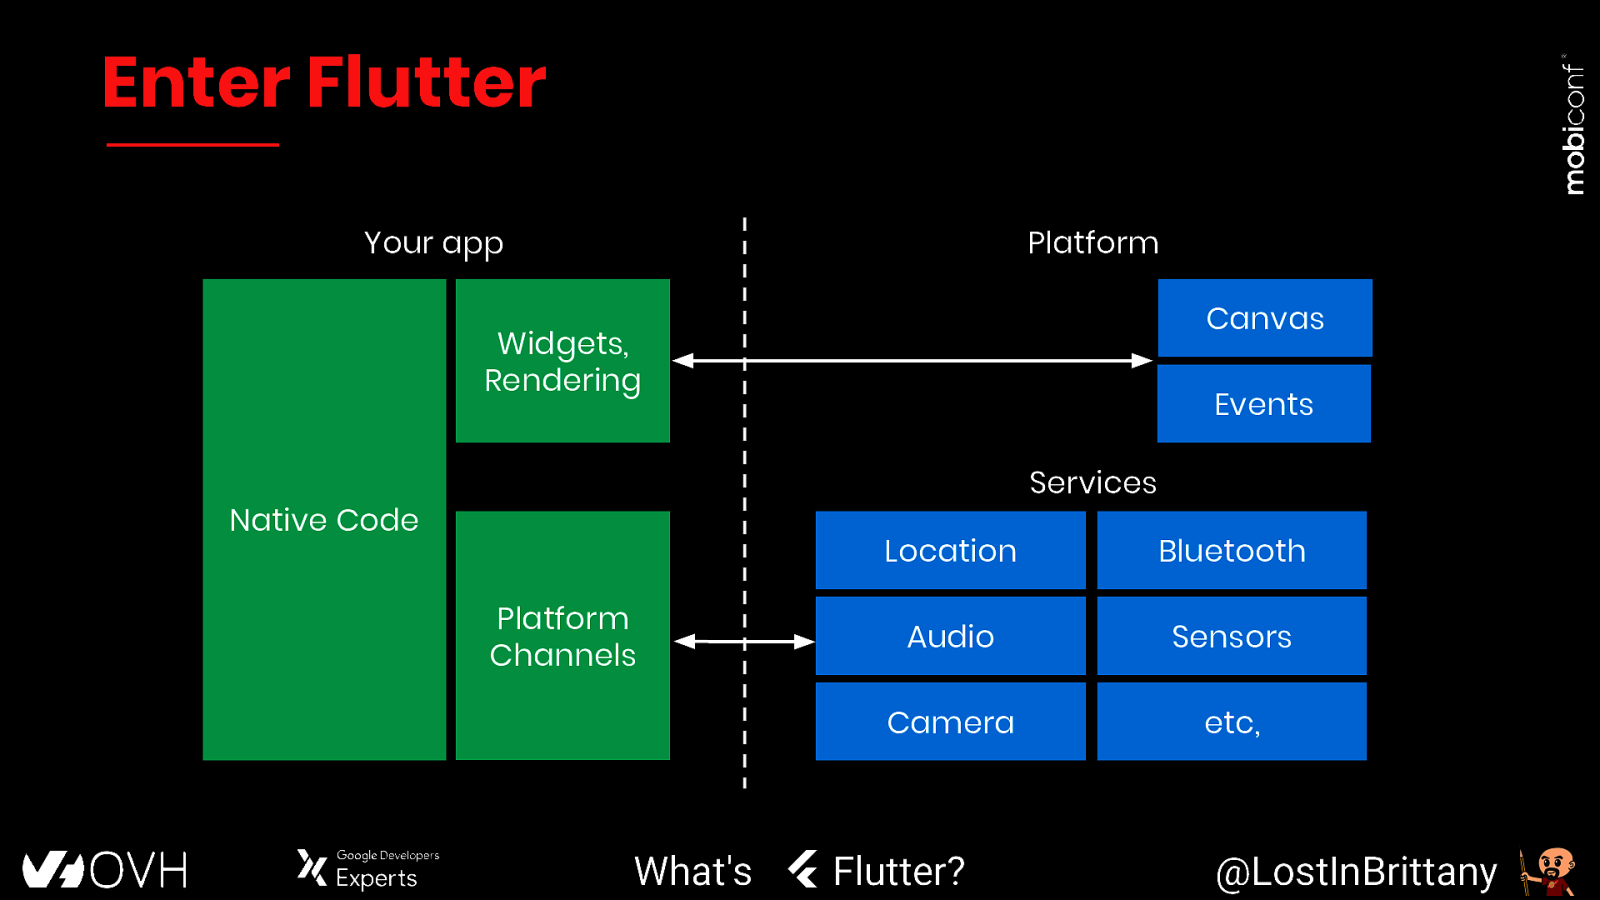 What's Flutter and why should I try it?